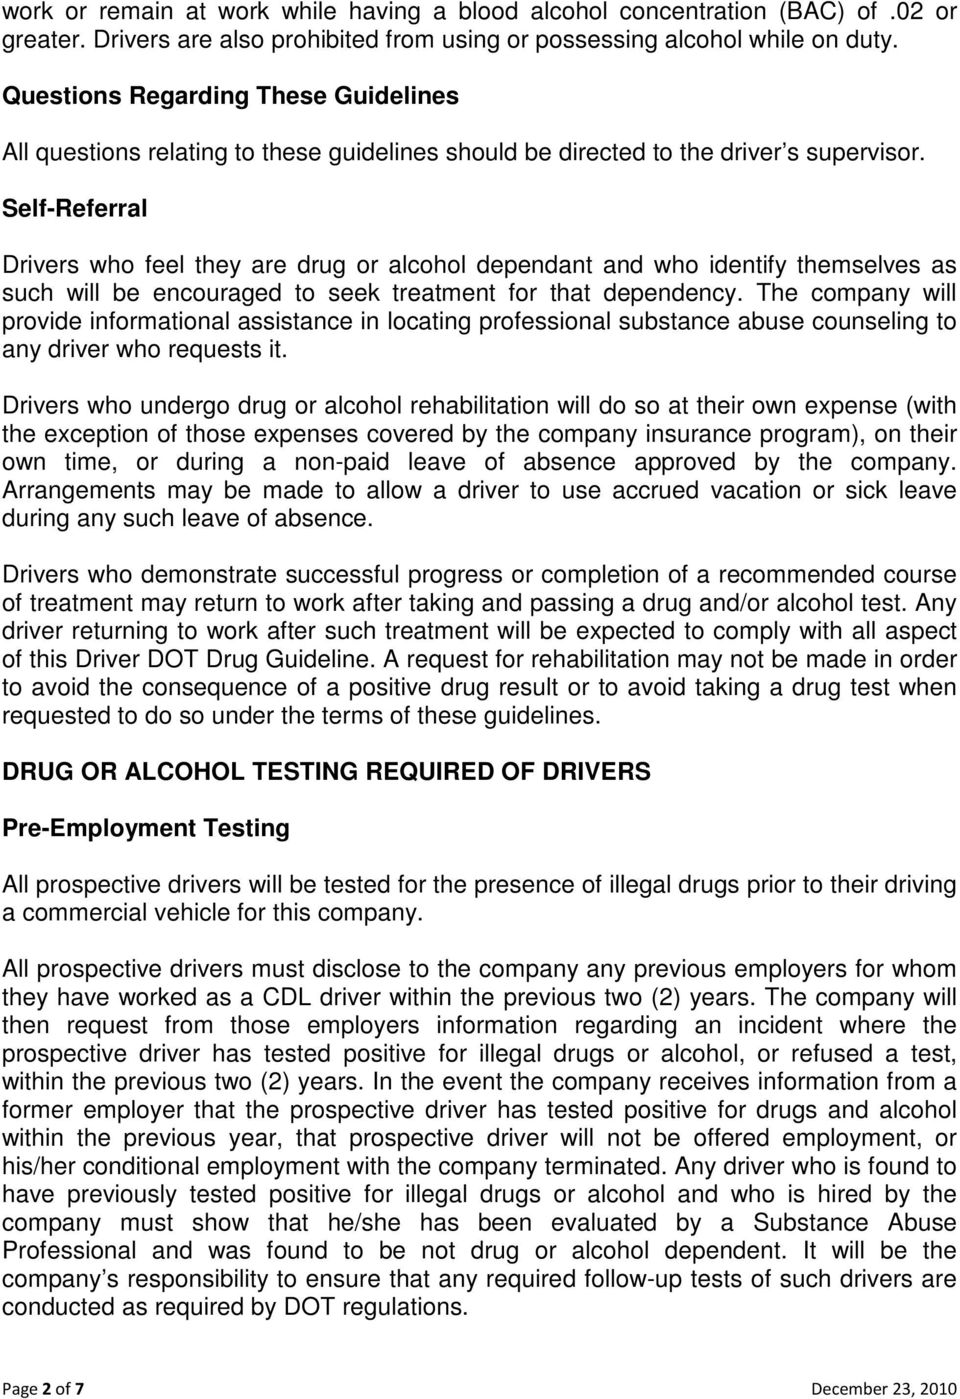 Self-Referral Drivers who feel they are drug or alcohol dependant and who identify themselves as such will be encouraged to seek treatment for that dependency.